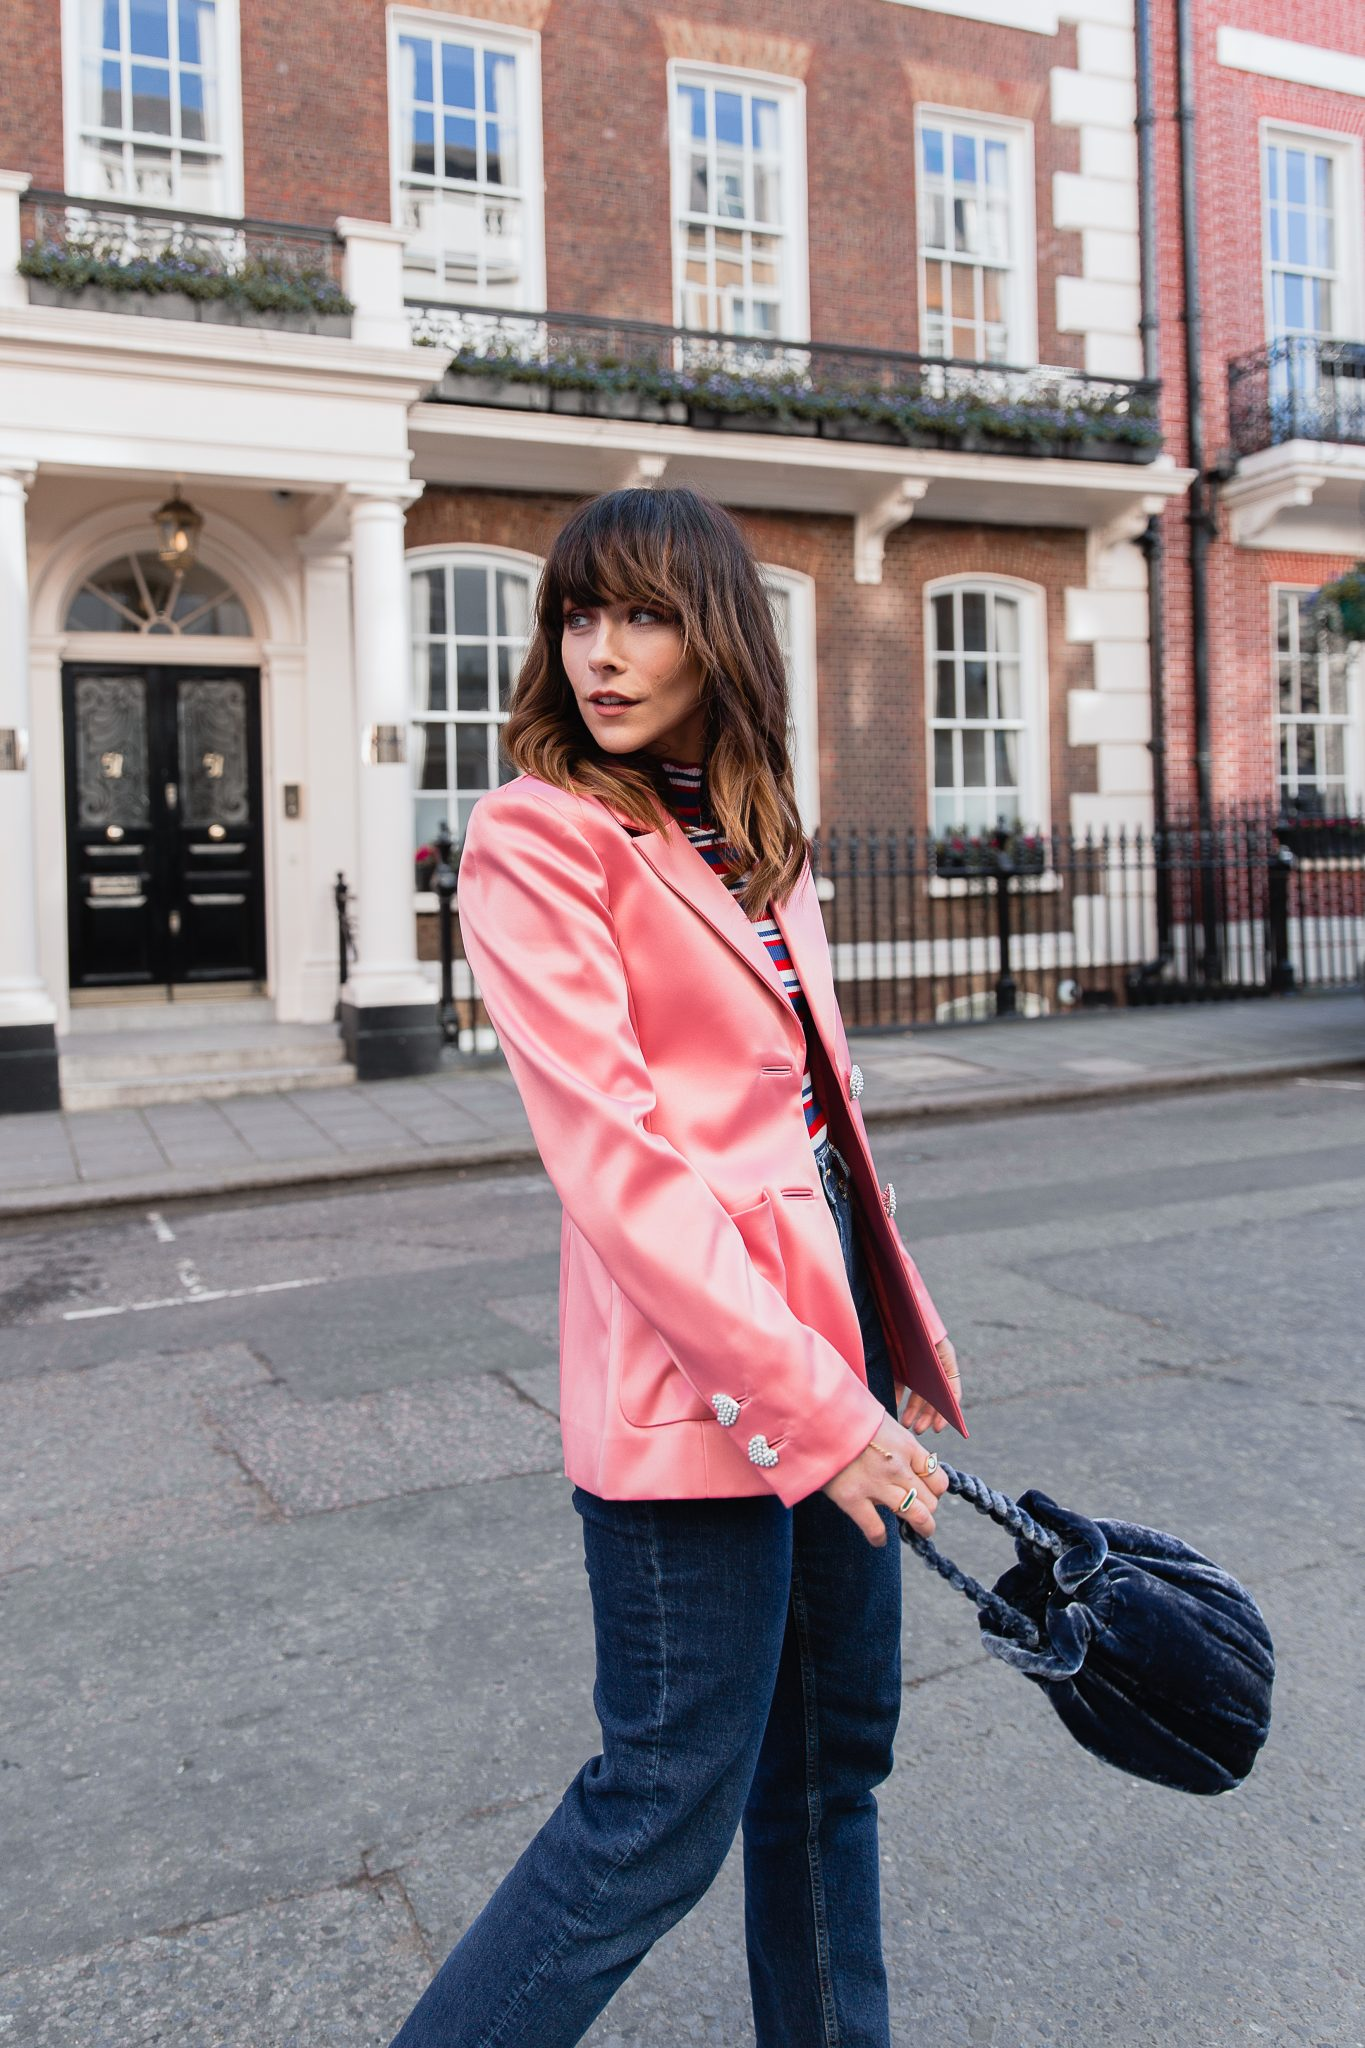 MEGAN ELLABY HOW TO CLASH COLOURS